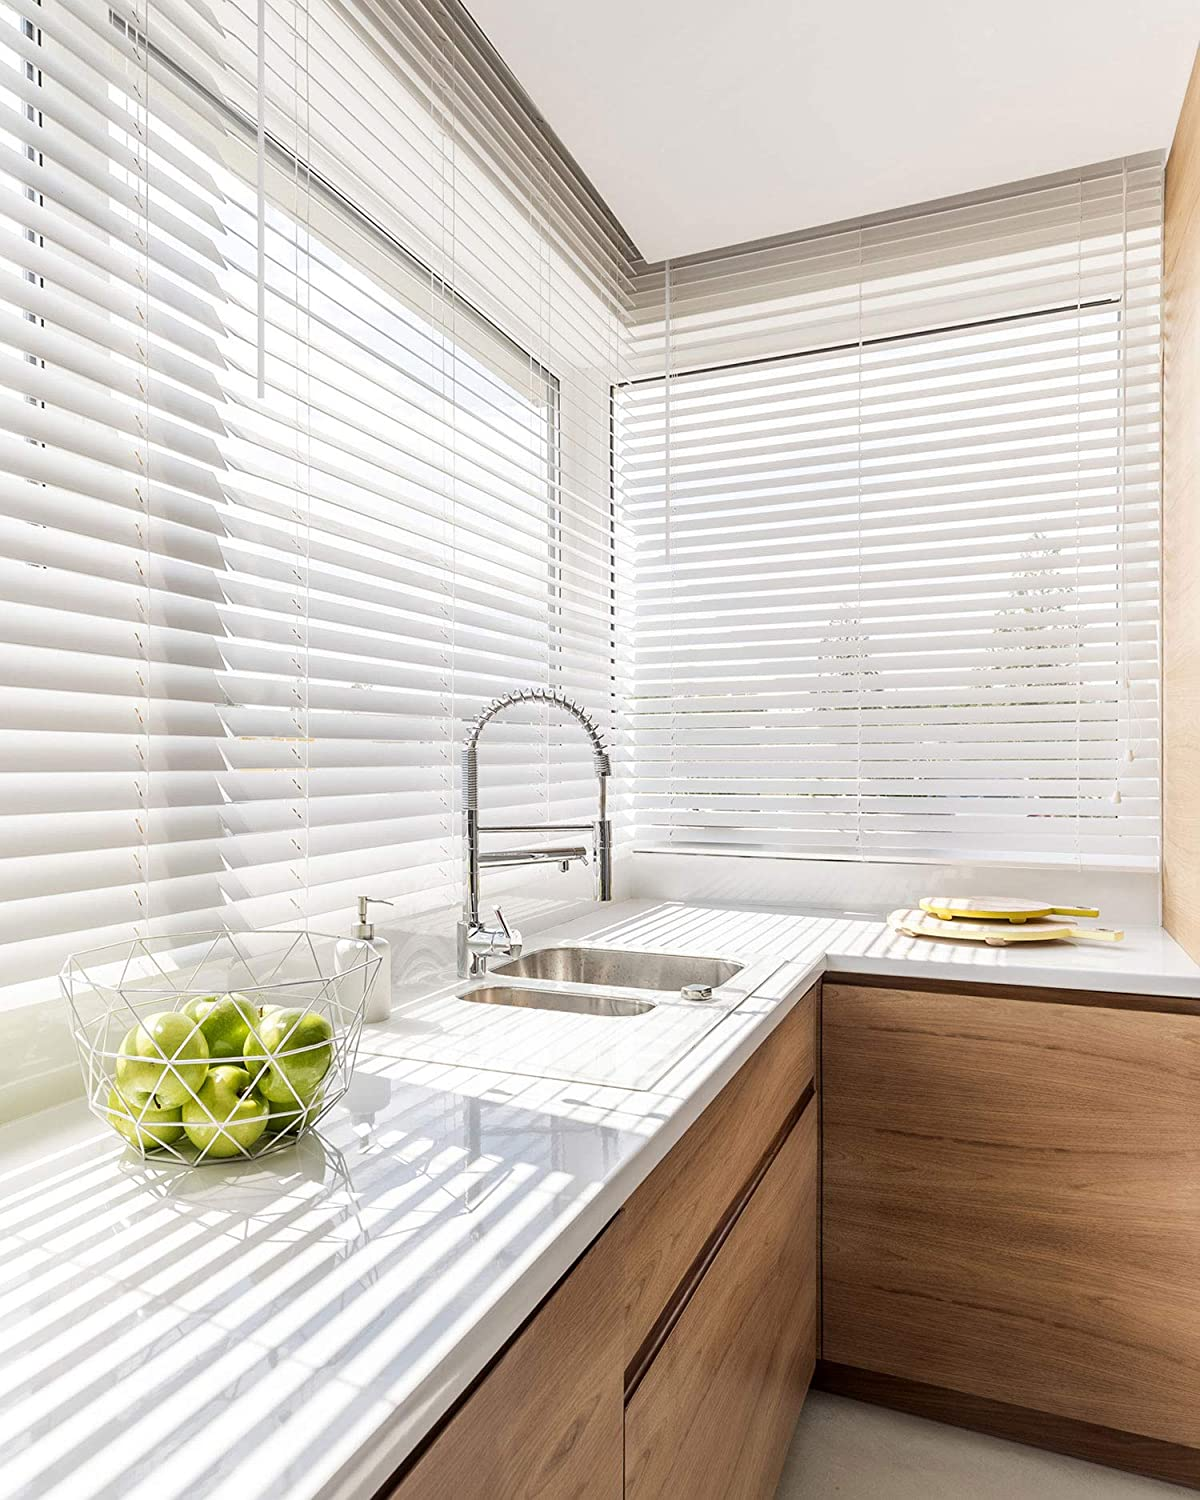 Amazon Com Chicology Cordless 2 In Faux Wood Blinds Horizontal Venetian Window Treatment Best For Kids Inside Mount 59 W X 60 H Basic White Home Kitchen